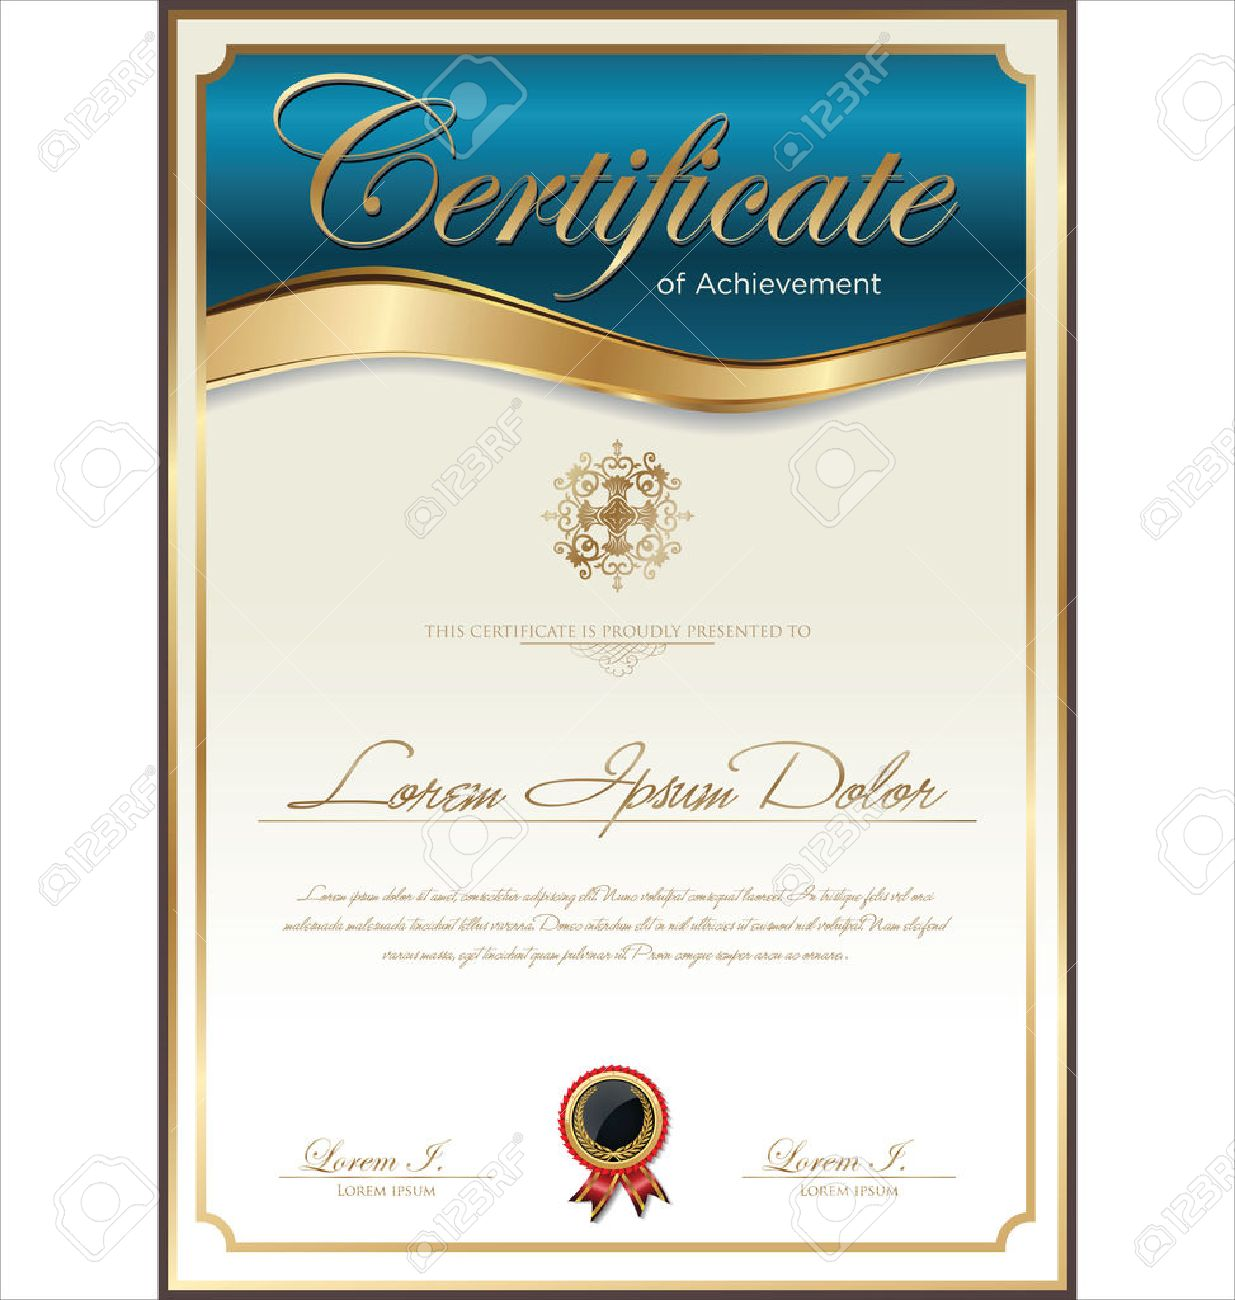 Certificate Template Royalty Free Cliparts, Vectors, And Stock ...